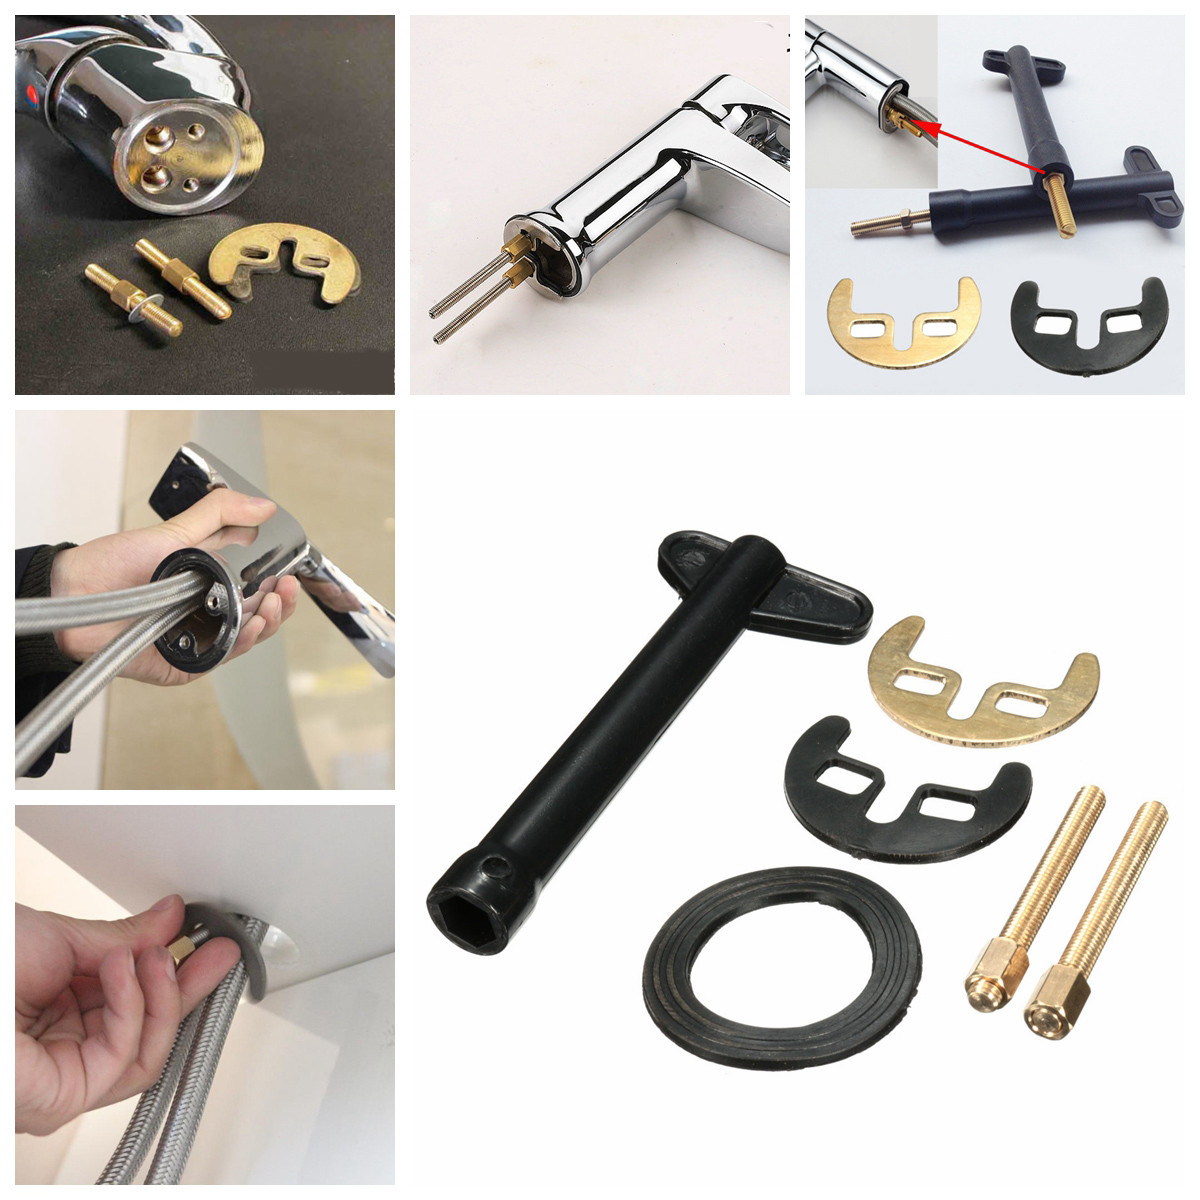 M6 Faucet Mounting Accessories Installation Tool Repair Wrench Kit